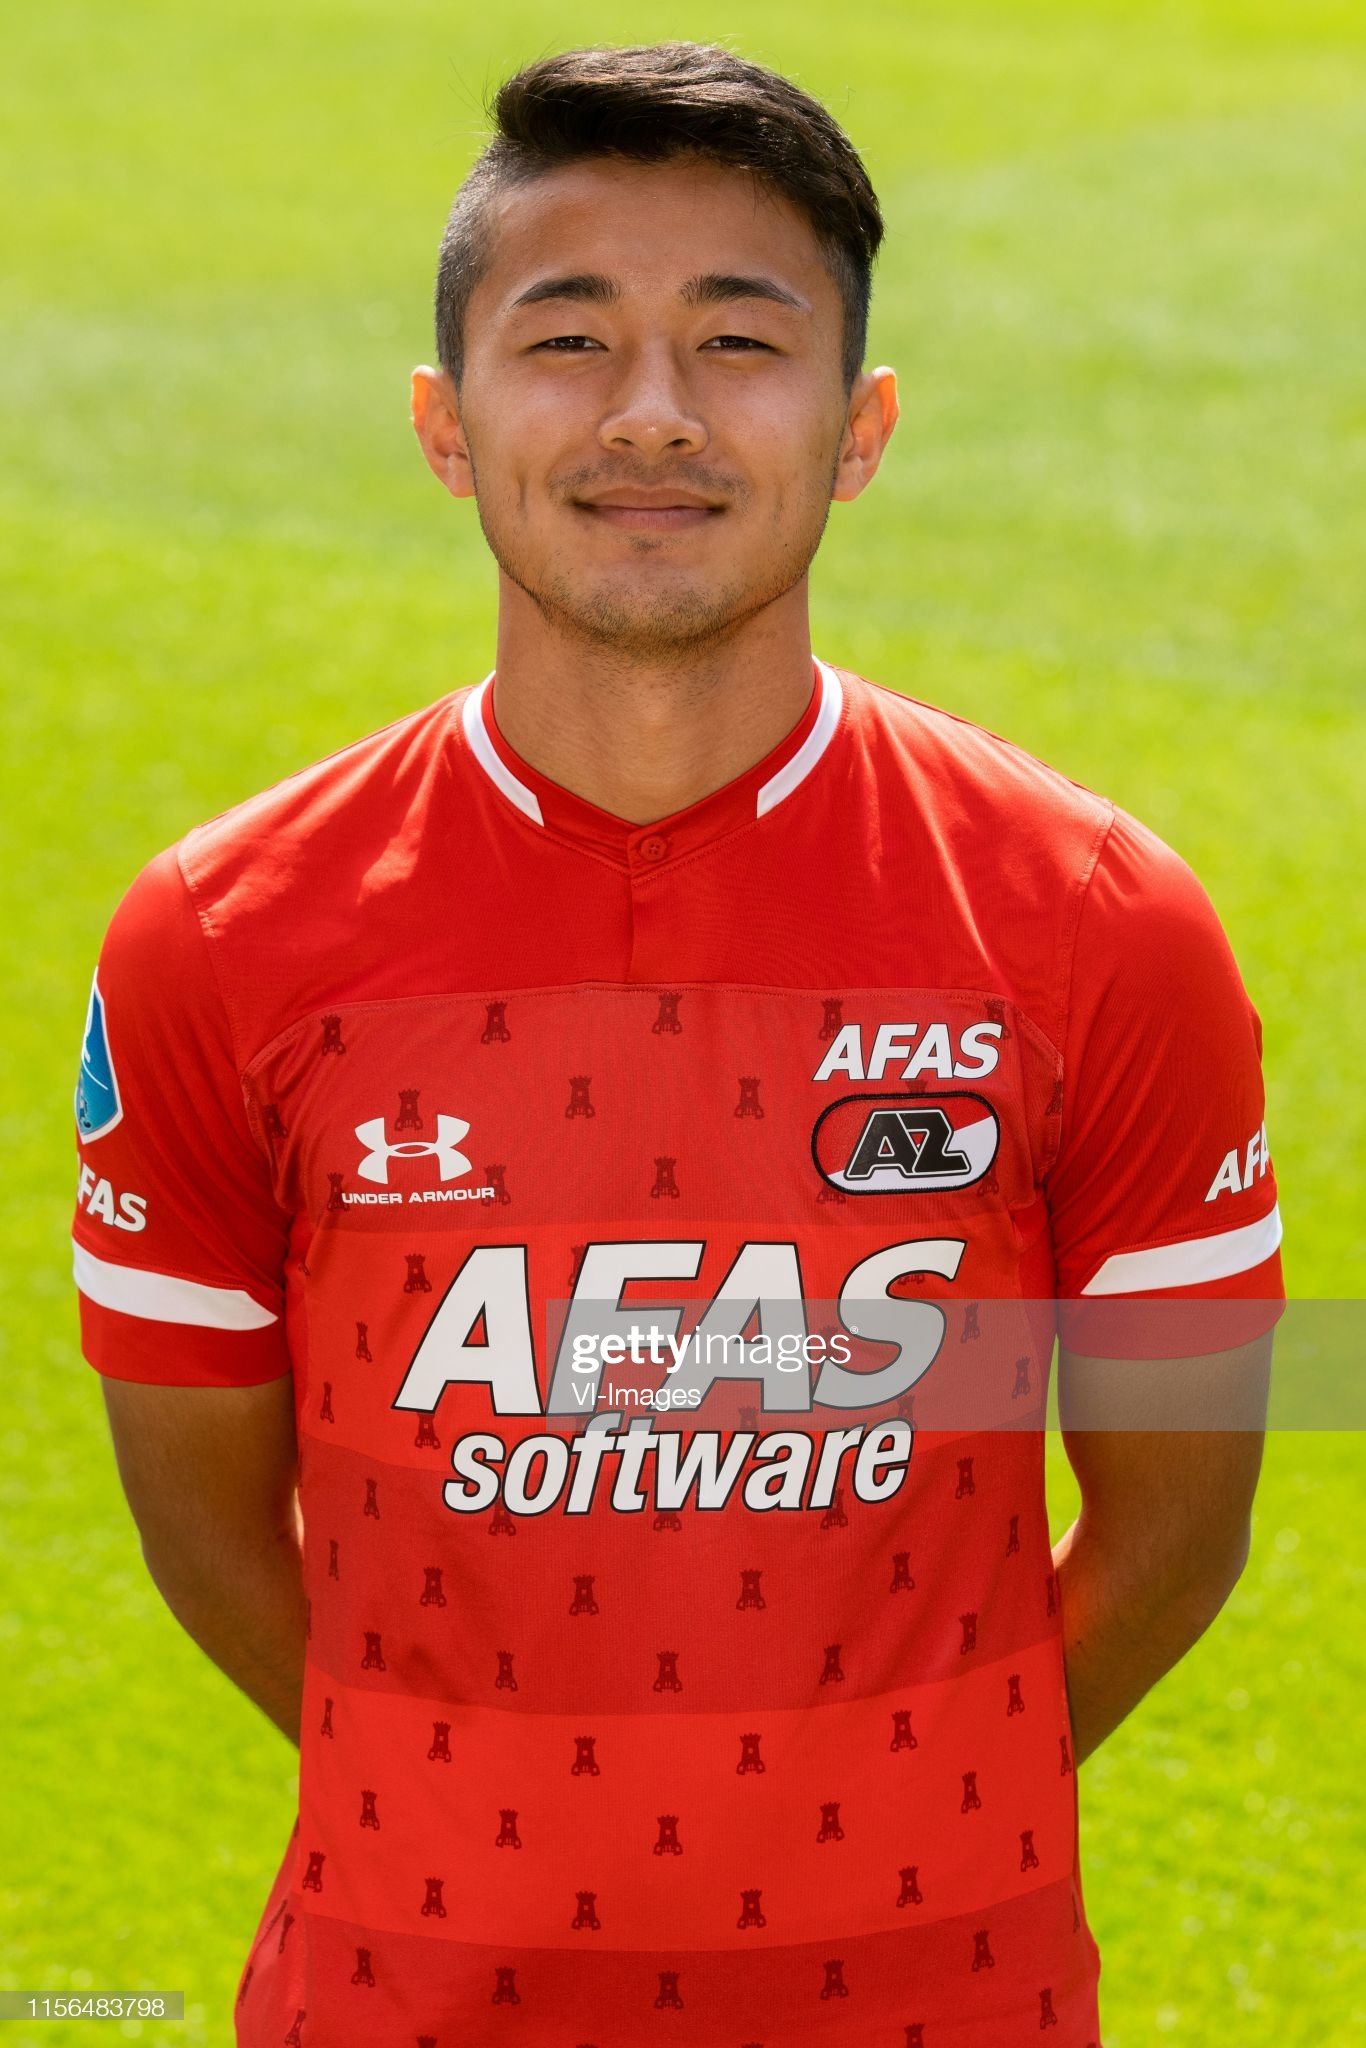 https://media.gettyimages.com/photos/yukinari-sugawara-during-the-team-presentation-of-az-alkmaar-on-july-picture-id1156483798?s=2048x2048